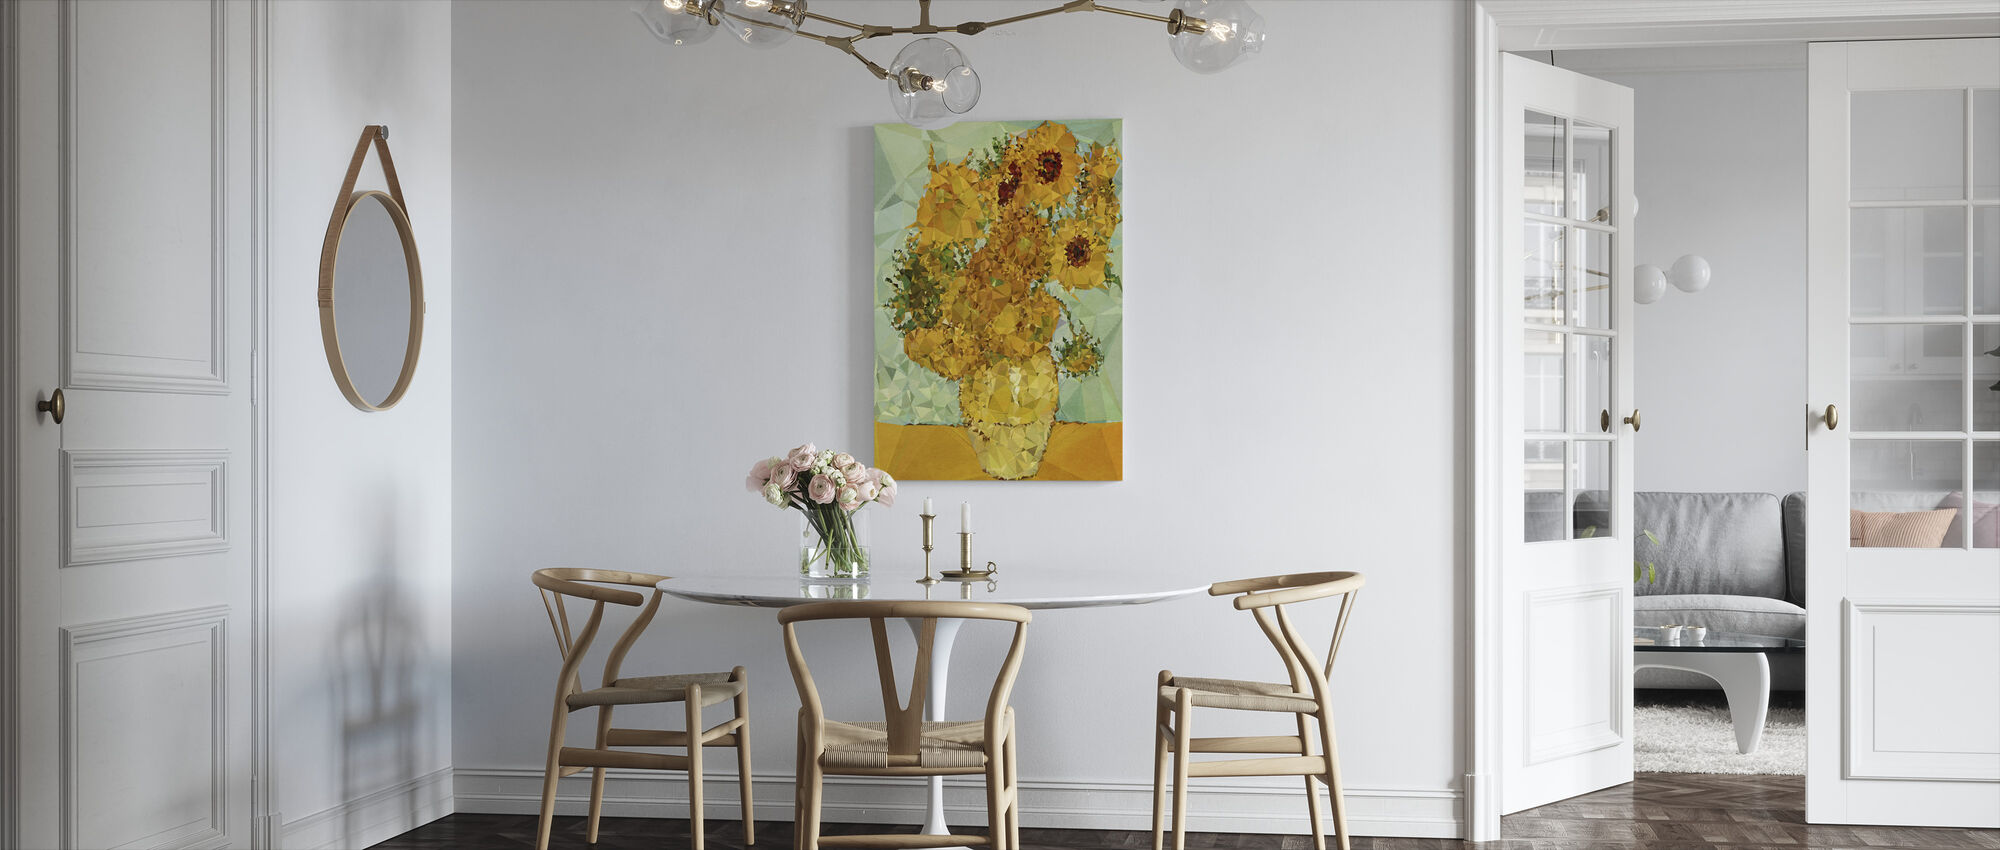 Symphony in Yellow and Blue - Canvas print - Kitchen